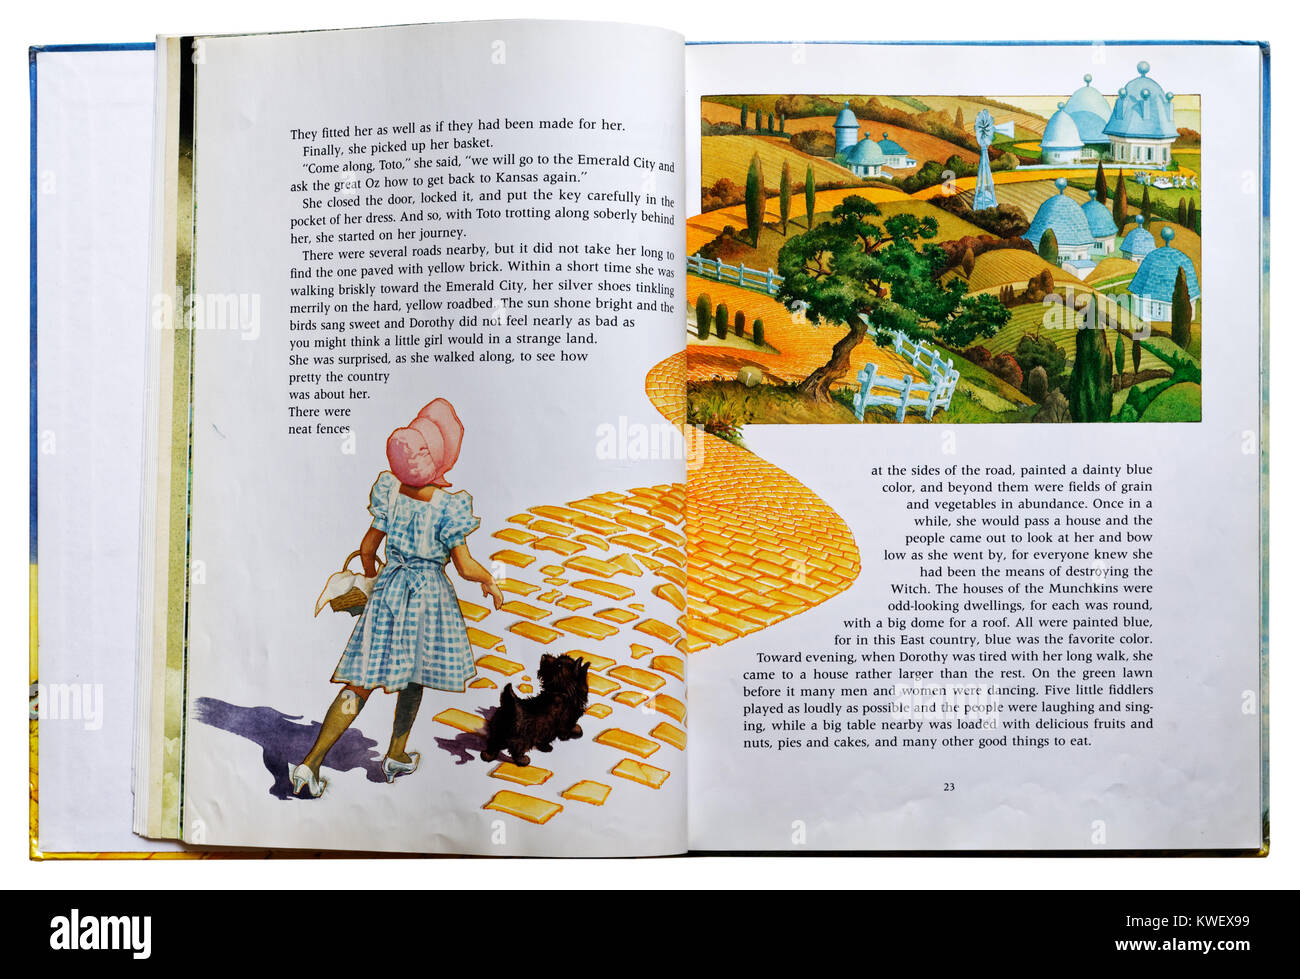 Dorothy on the Yellow Brick Road in an Illustrated book of The Wizard of Oz - Stock Image